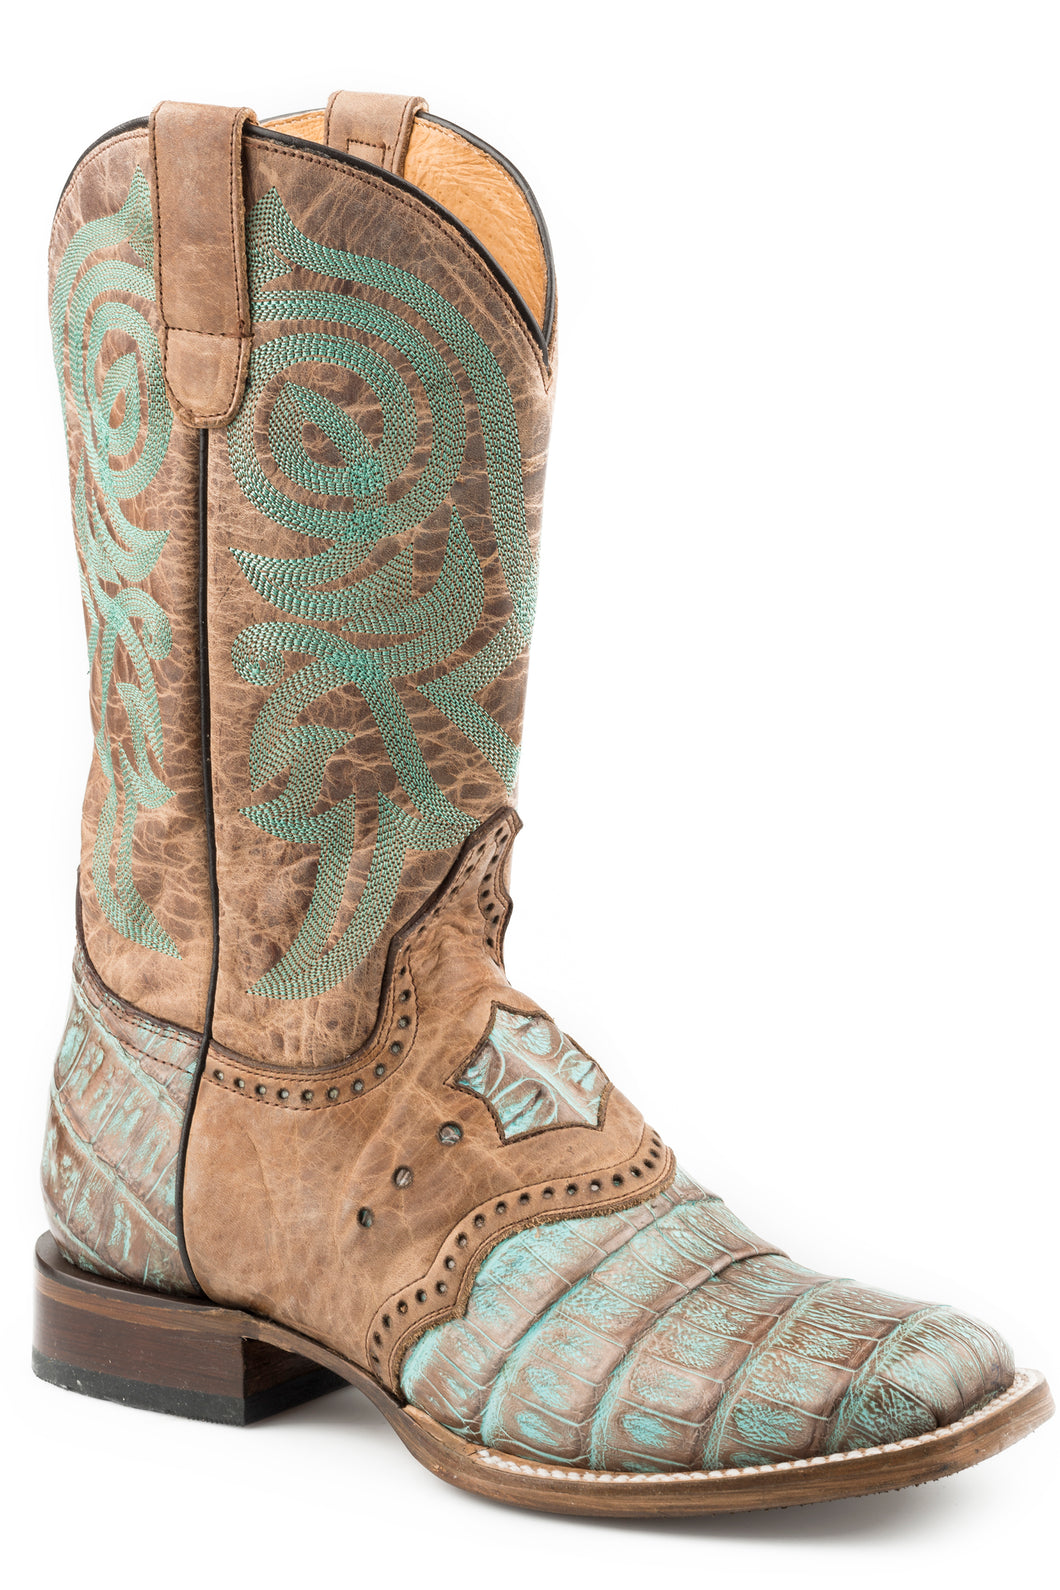 Deadwood Boot Womens Boots Copper And Turquoise Caiman Wsaddle